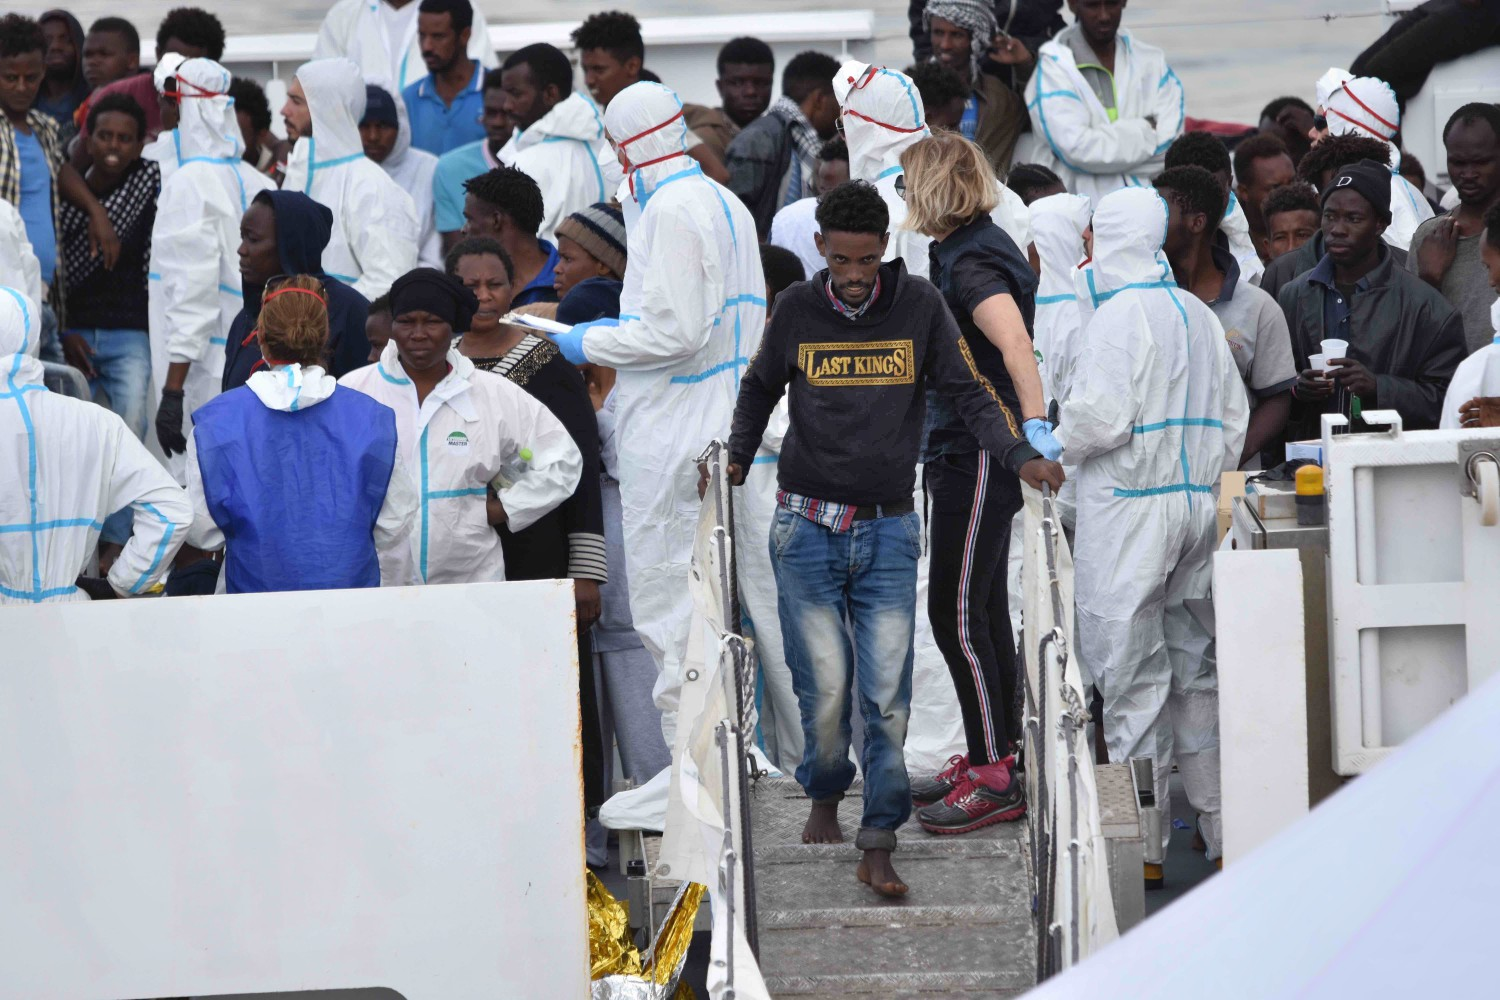 The Berlin Rome Agreement To Send Back To Italy Moved The Migrants